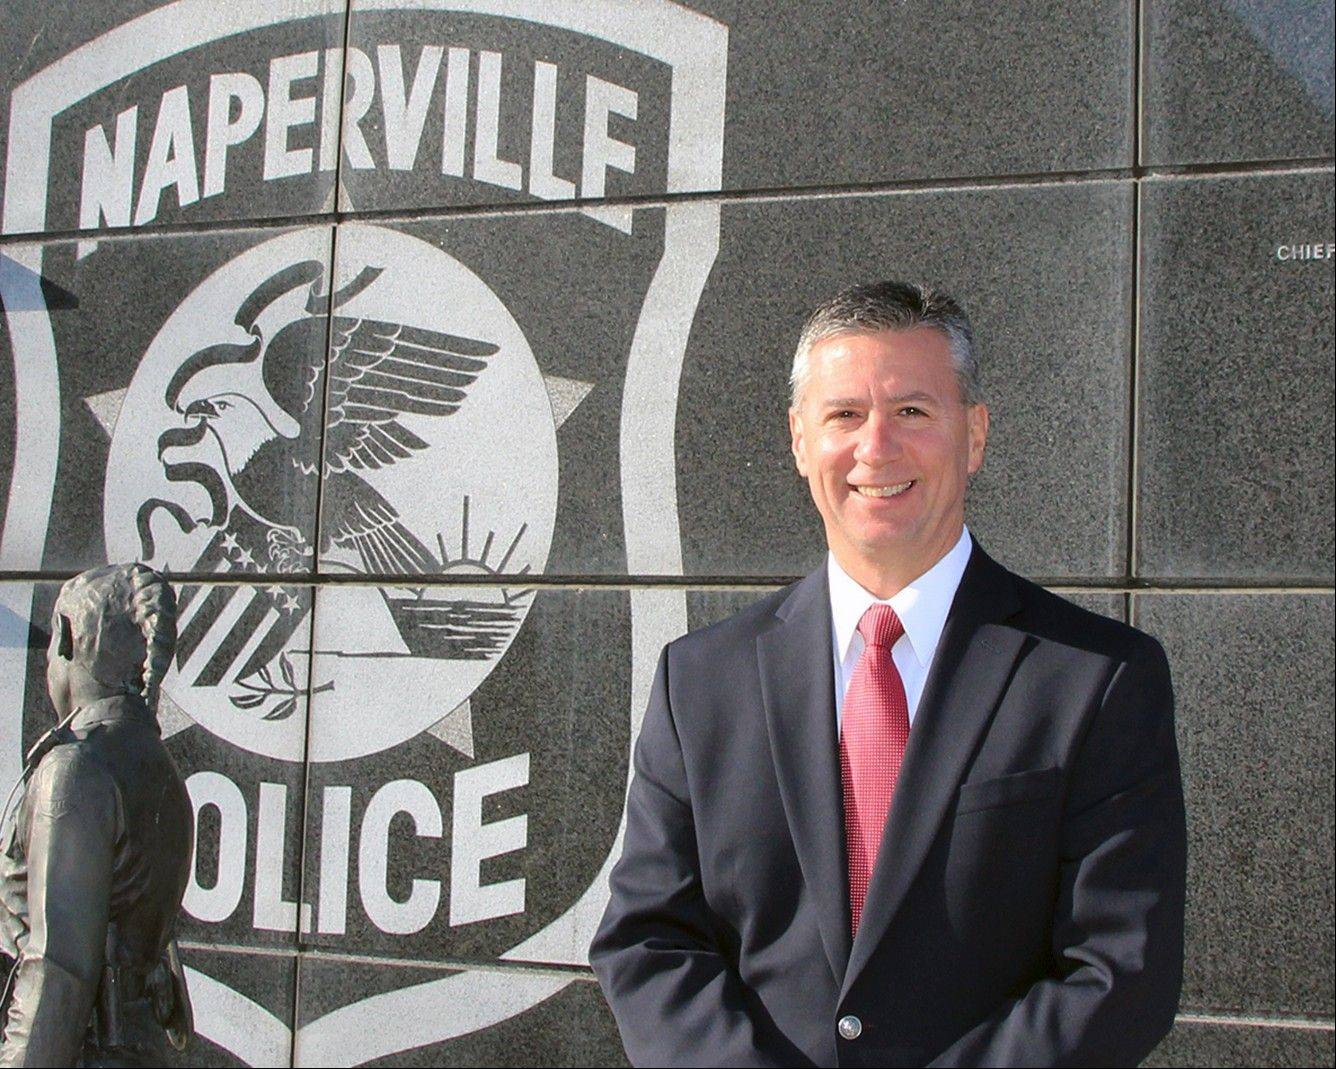 Louis Cammiso was promoted Monday to the rank of commander in the Naperville Police Department from his previous position as Internal Affairs Sgt. and Public Information Officer.